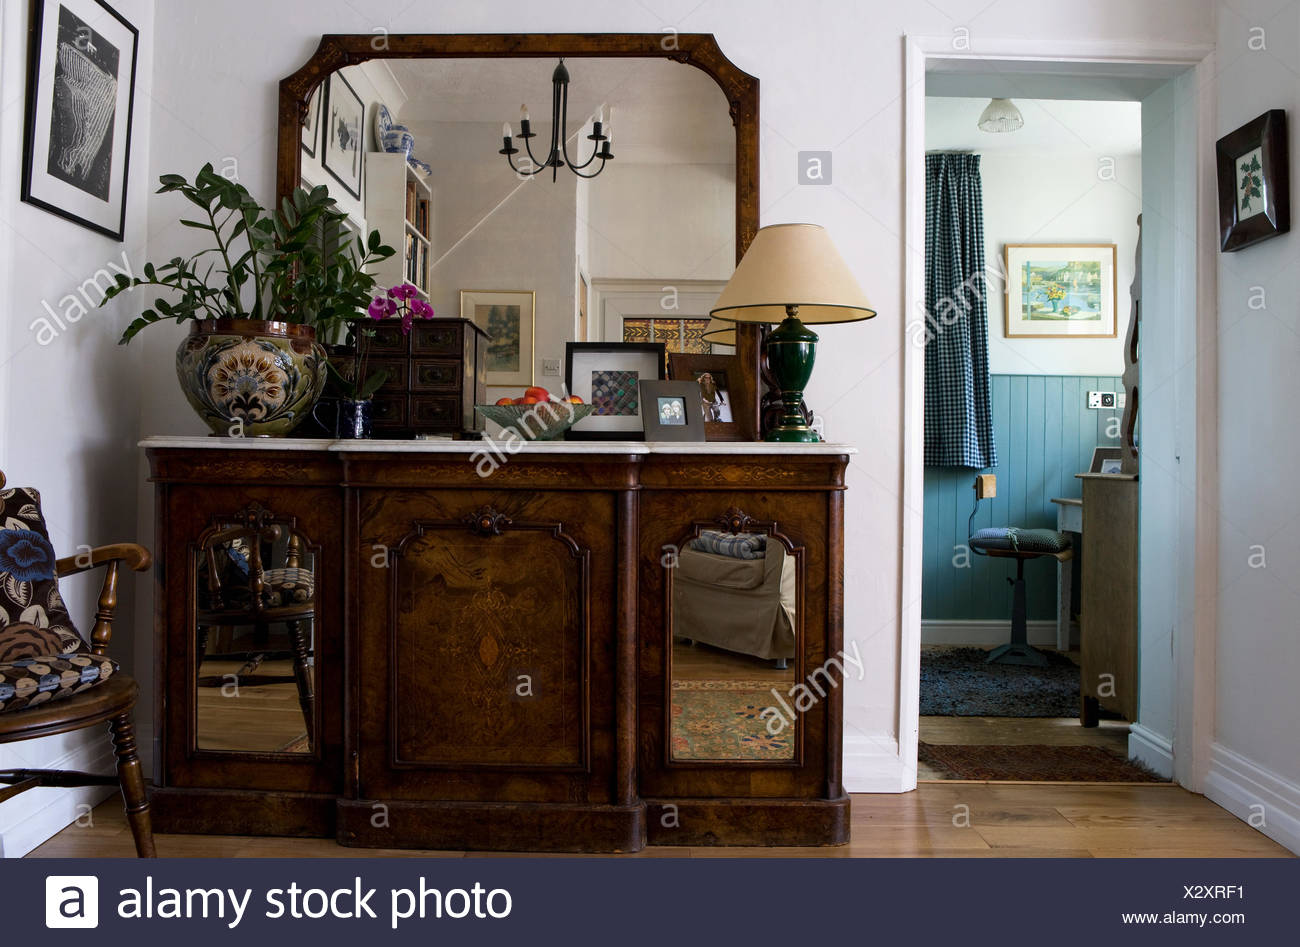 Large Mirror Above Marble Topped Antique Sideboard With Mirrored Doors In  Small Living Room